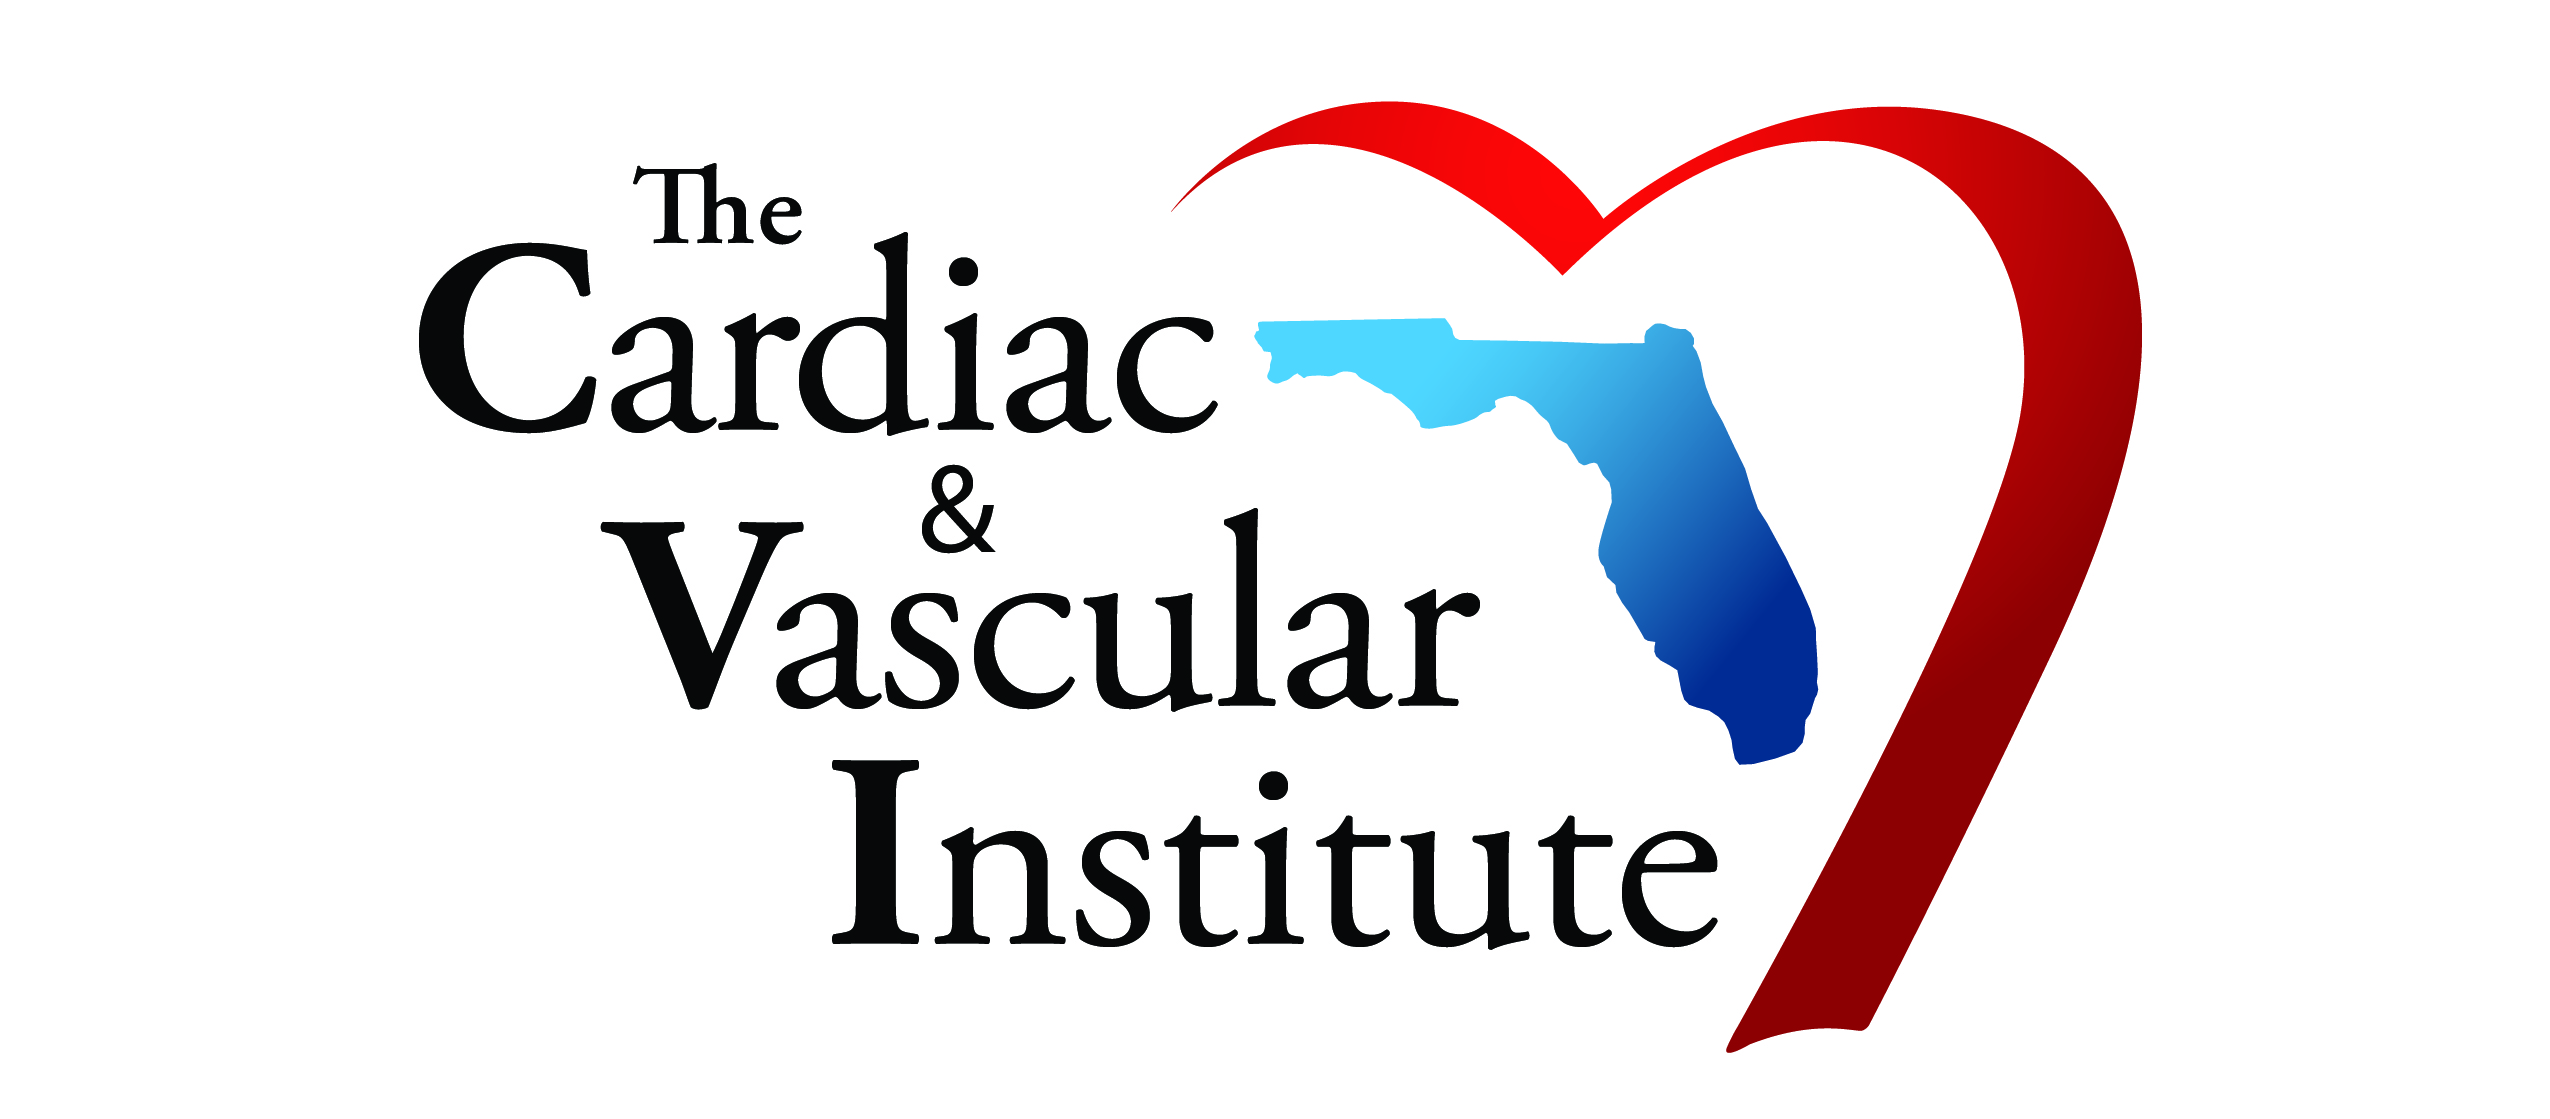 The Cardiac & Vascular Institute First in Florida to Enroll Patients in New Clinical Trial Studying LimFlow Therapy